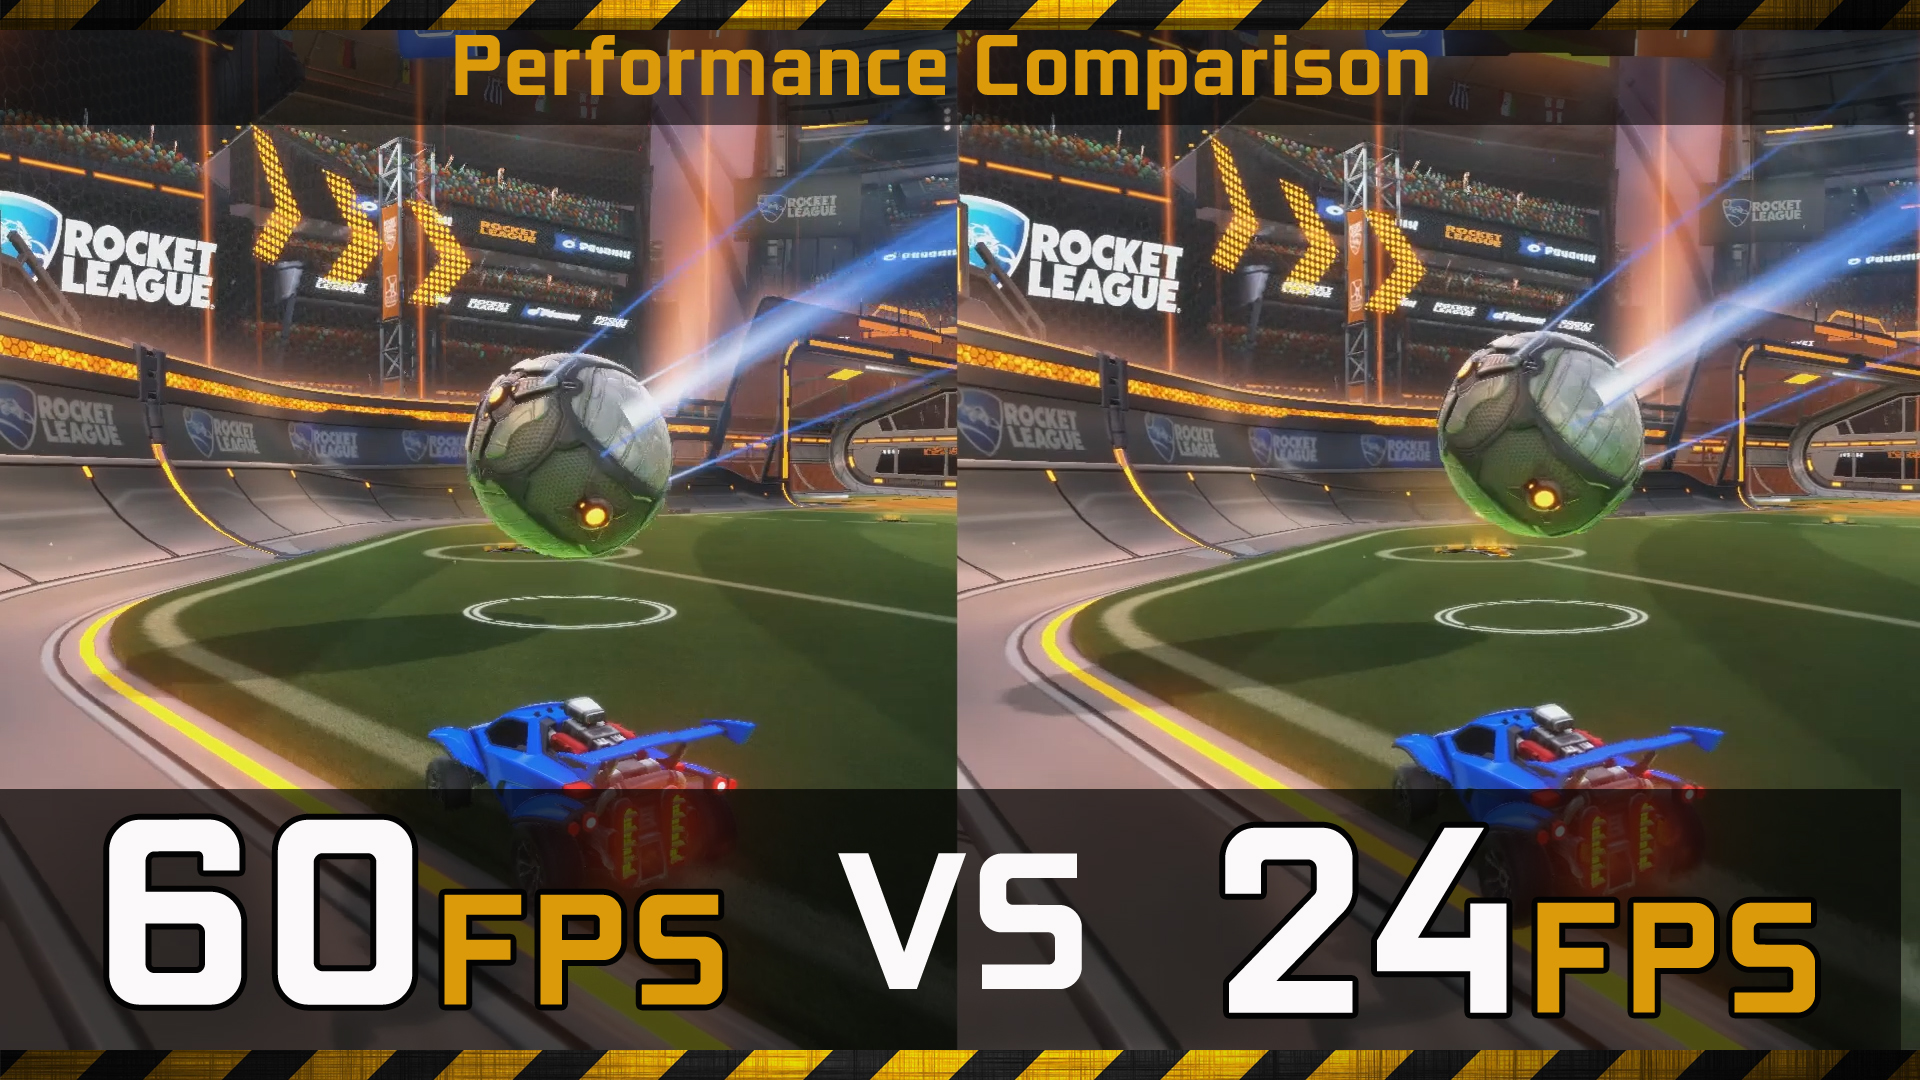 60 FPS (Gaming) vs 24 FPS (Movies) Gaming Performance Comparison ...